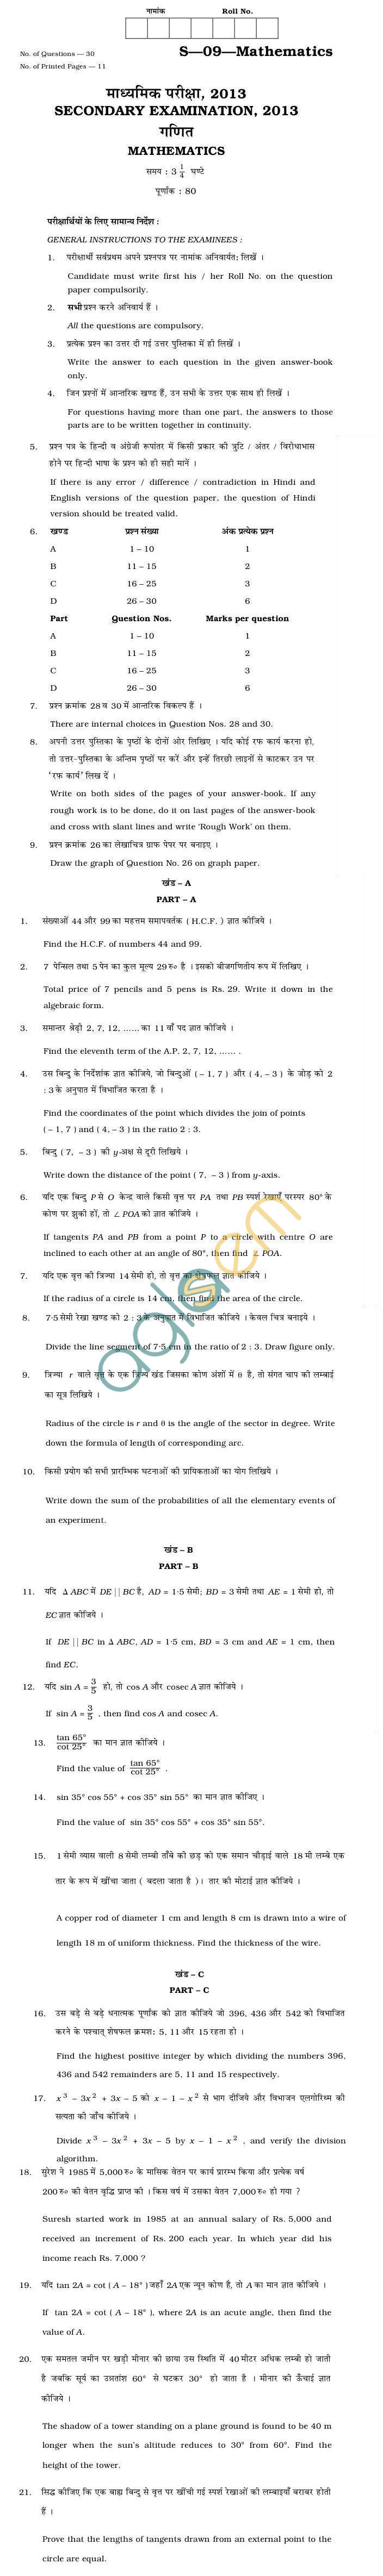 Rajasthan Board Secondary Maths Question Paper 2013